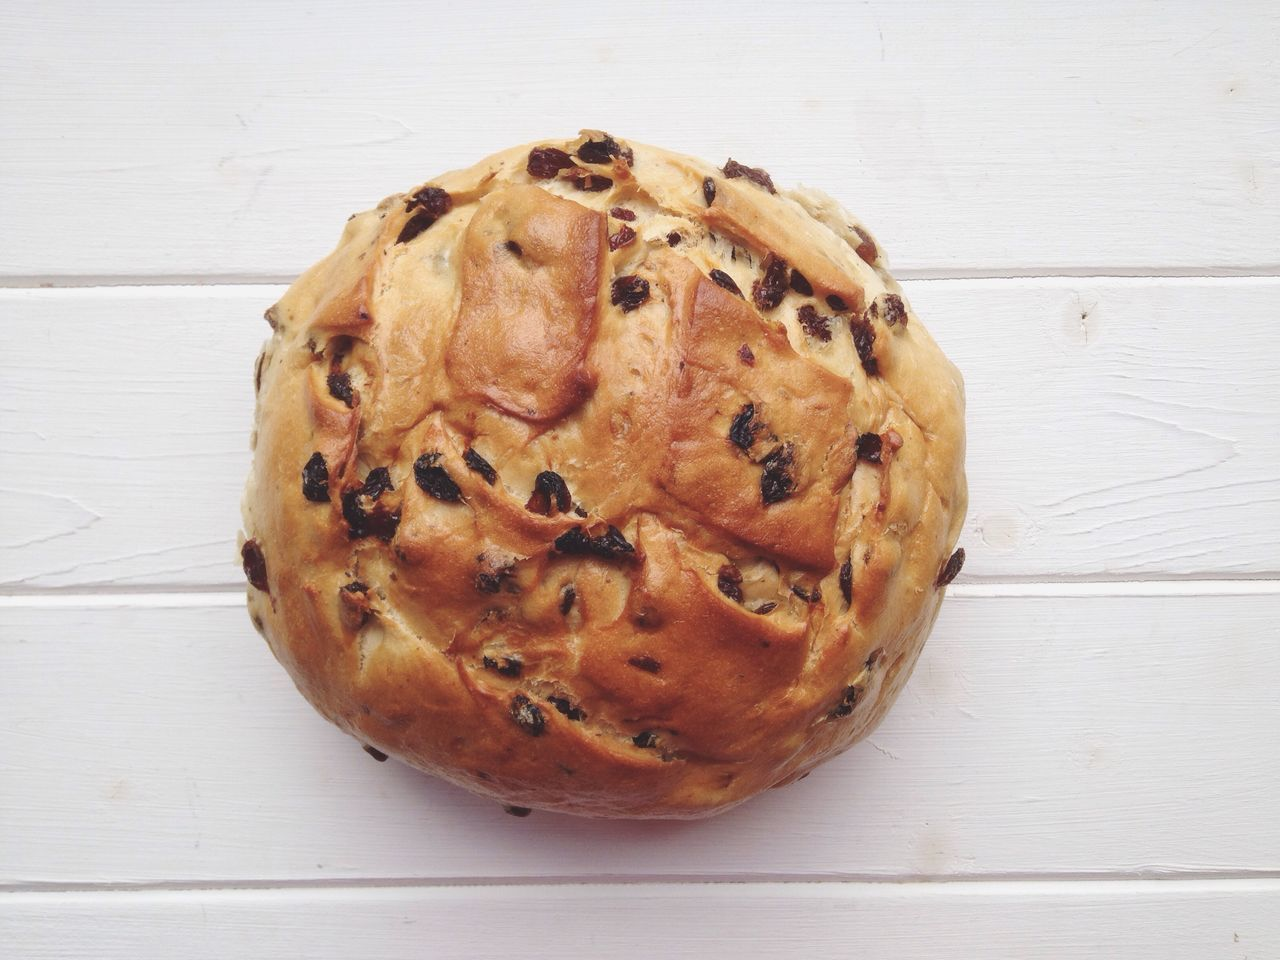 Food Loaf Raisins Bread Rosinenbrot Directly Above Round German Sweet Raisin Bread Currant Bread